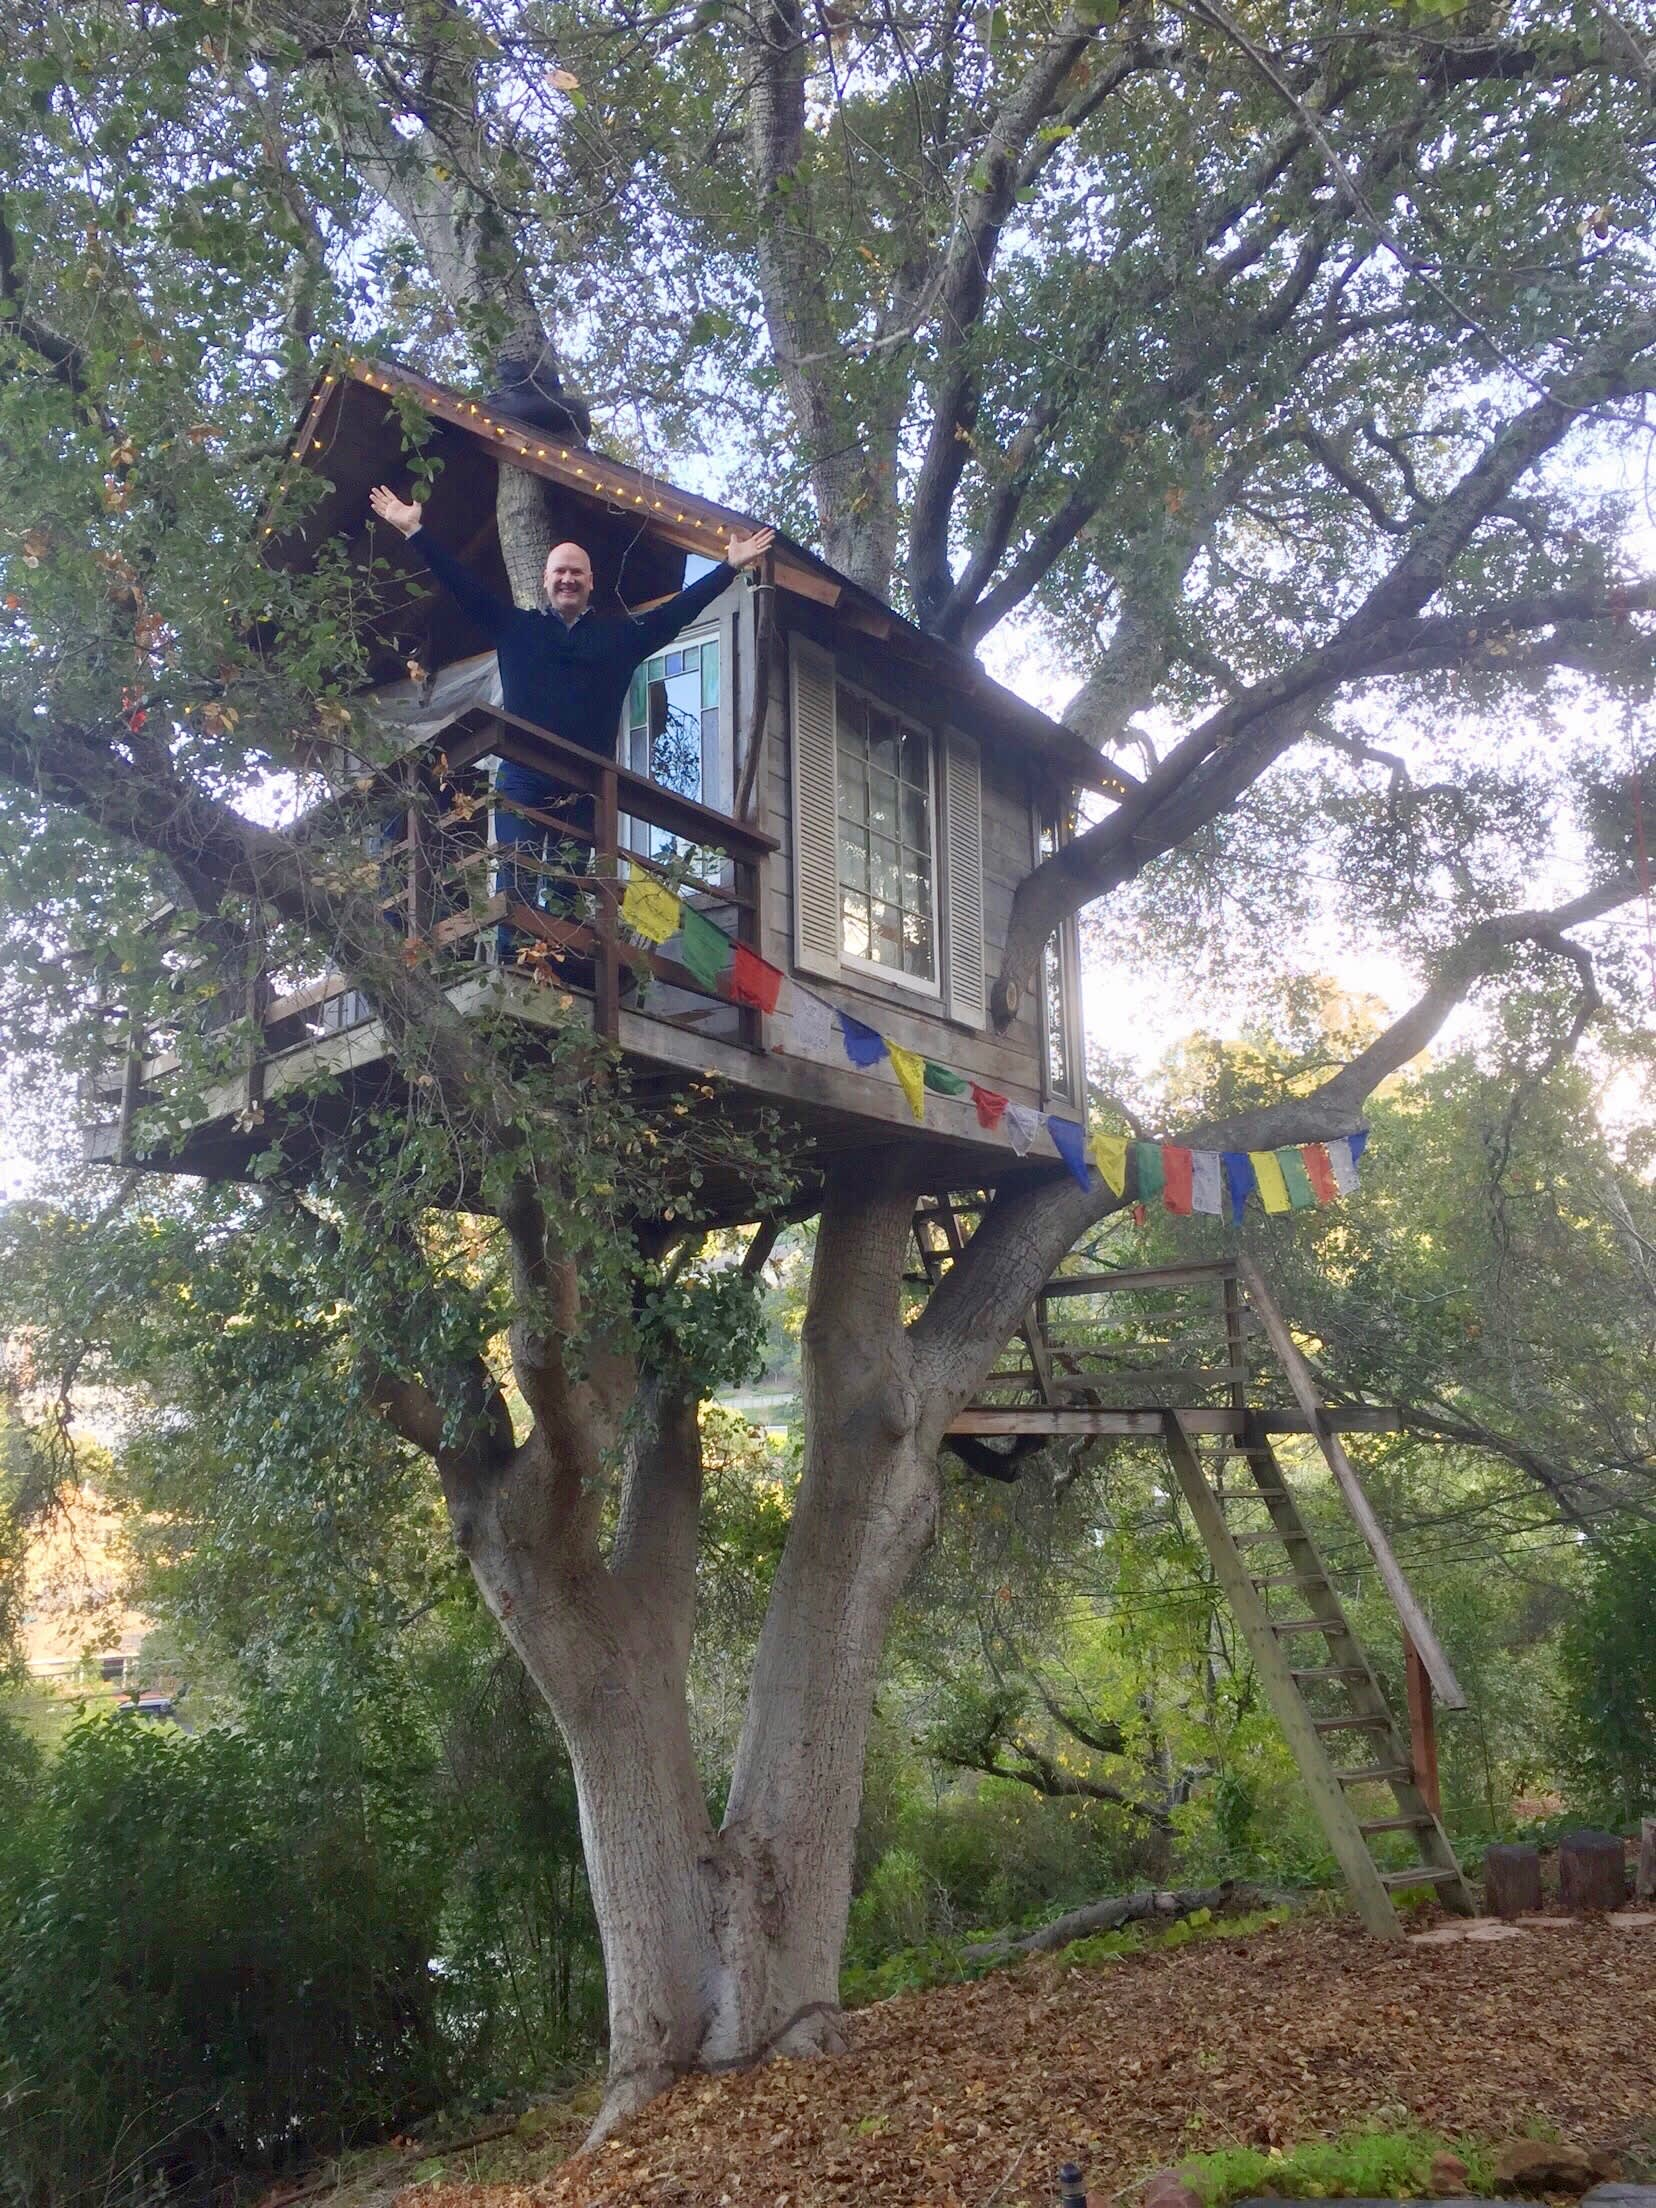 Greg Greeley Former Amazon Prime Vp Moves To Airbnb Homes